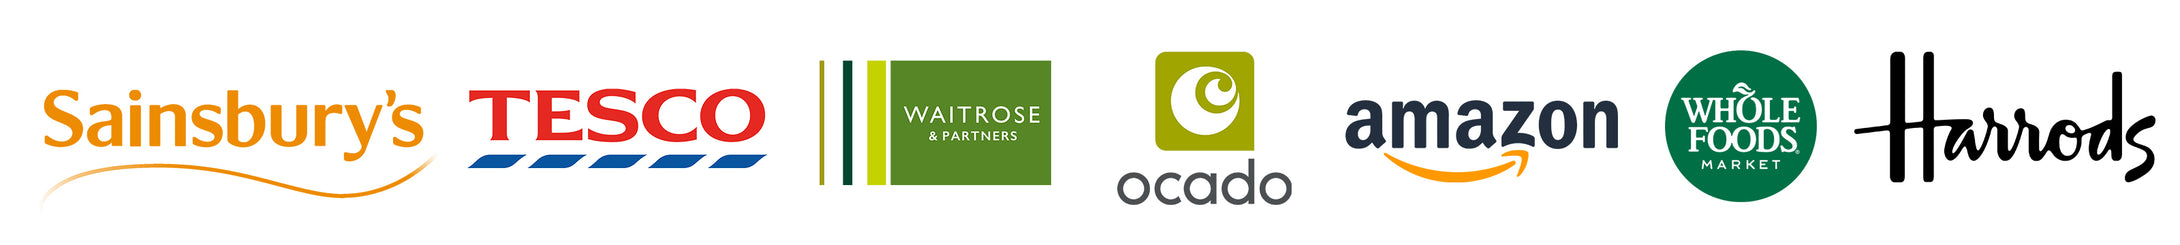 Stockist Logos Including Sainsbury's, Tesco, Waitrose & Partners, Ocado, Amazon, Whole Foods & Harrods